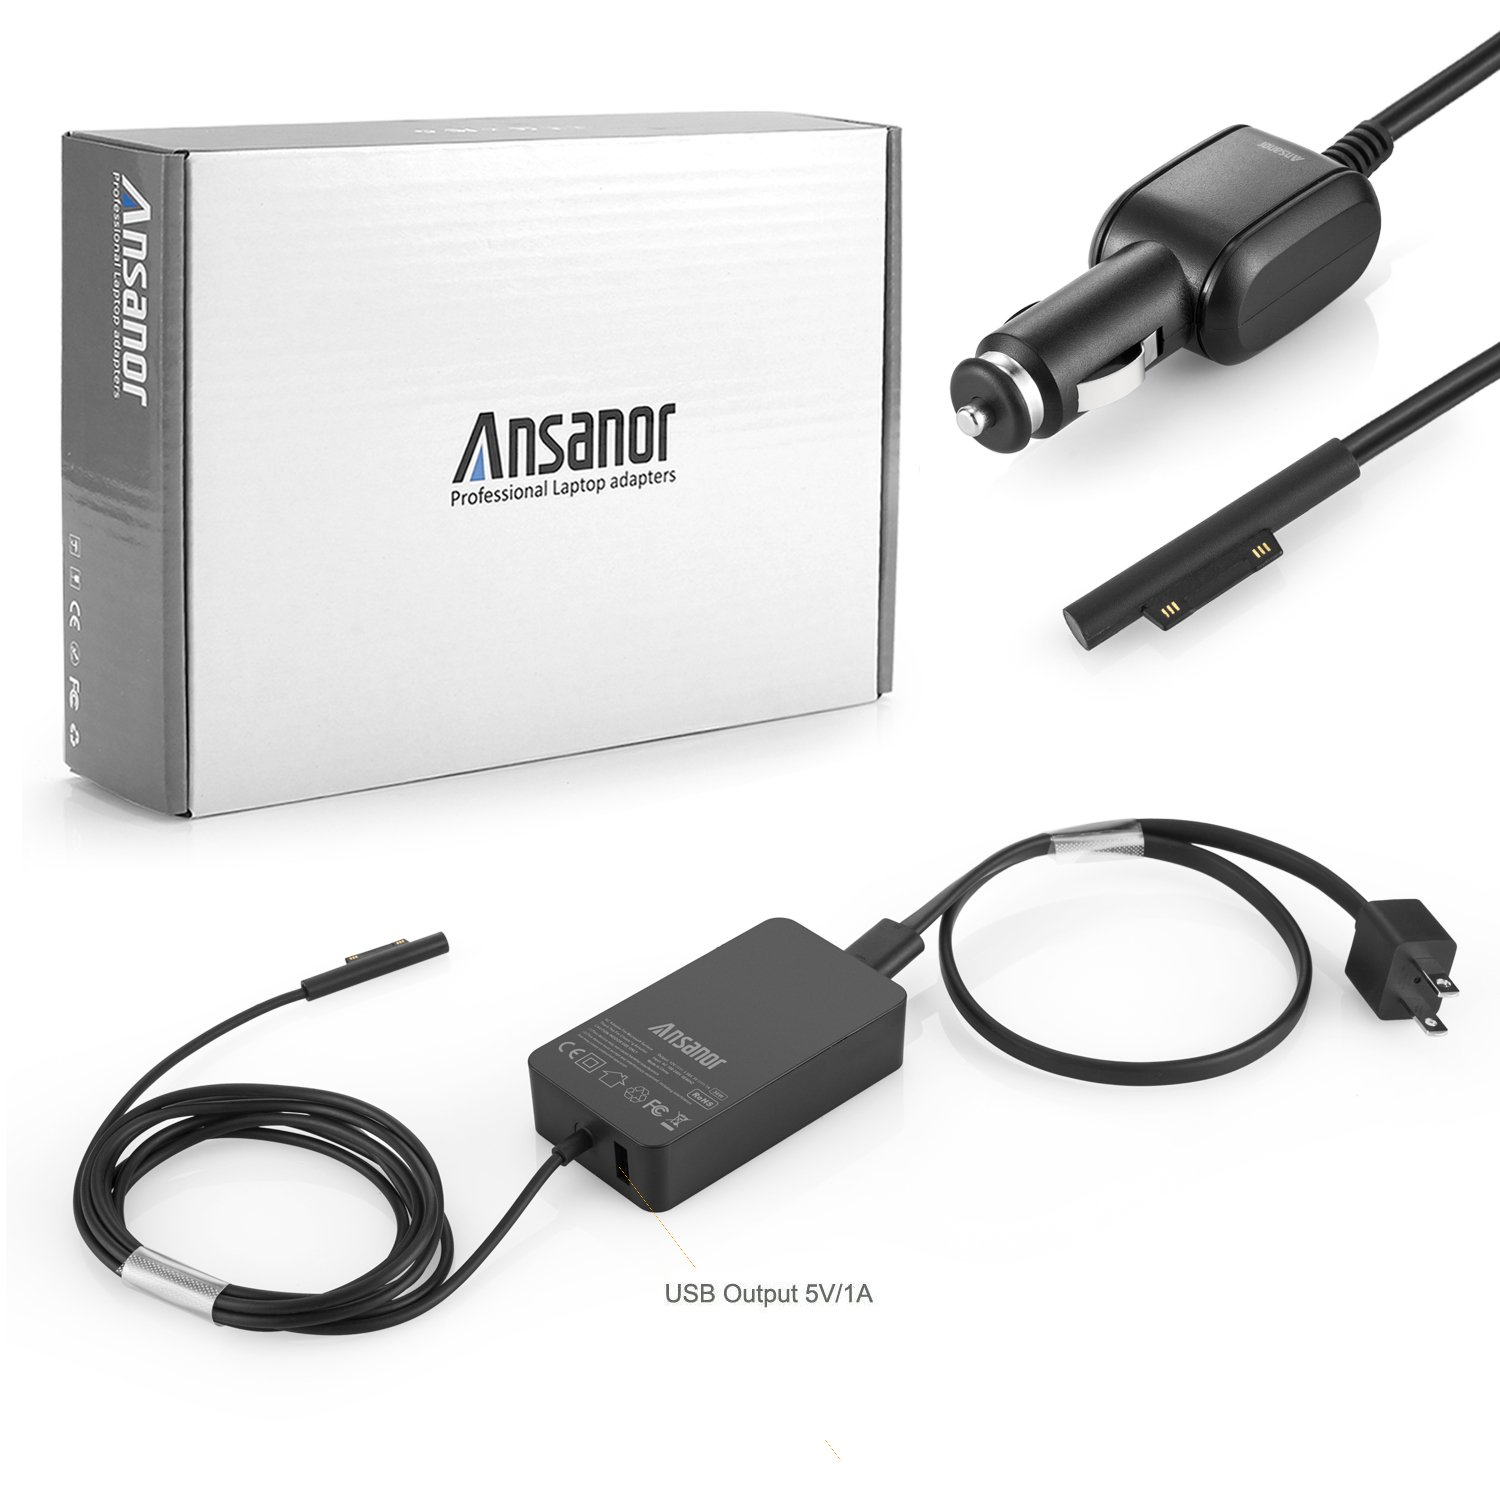 Ansanor 36W 12V 2.58A Power Adapter Charger for Microsoft Surface Pro 3 Pro 4 i5 i7 with USB Charging Port and 6Ft Cord, fits Model 1625 + Car Charger